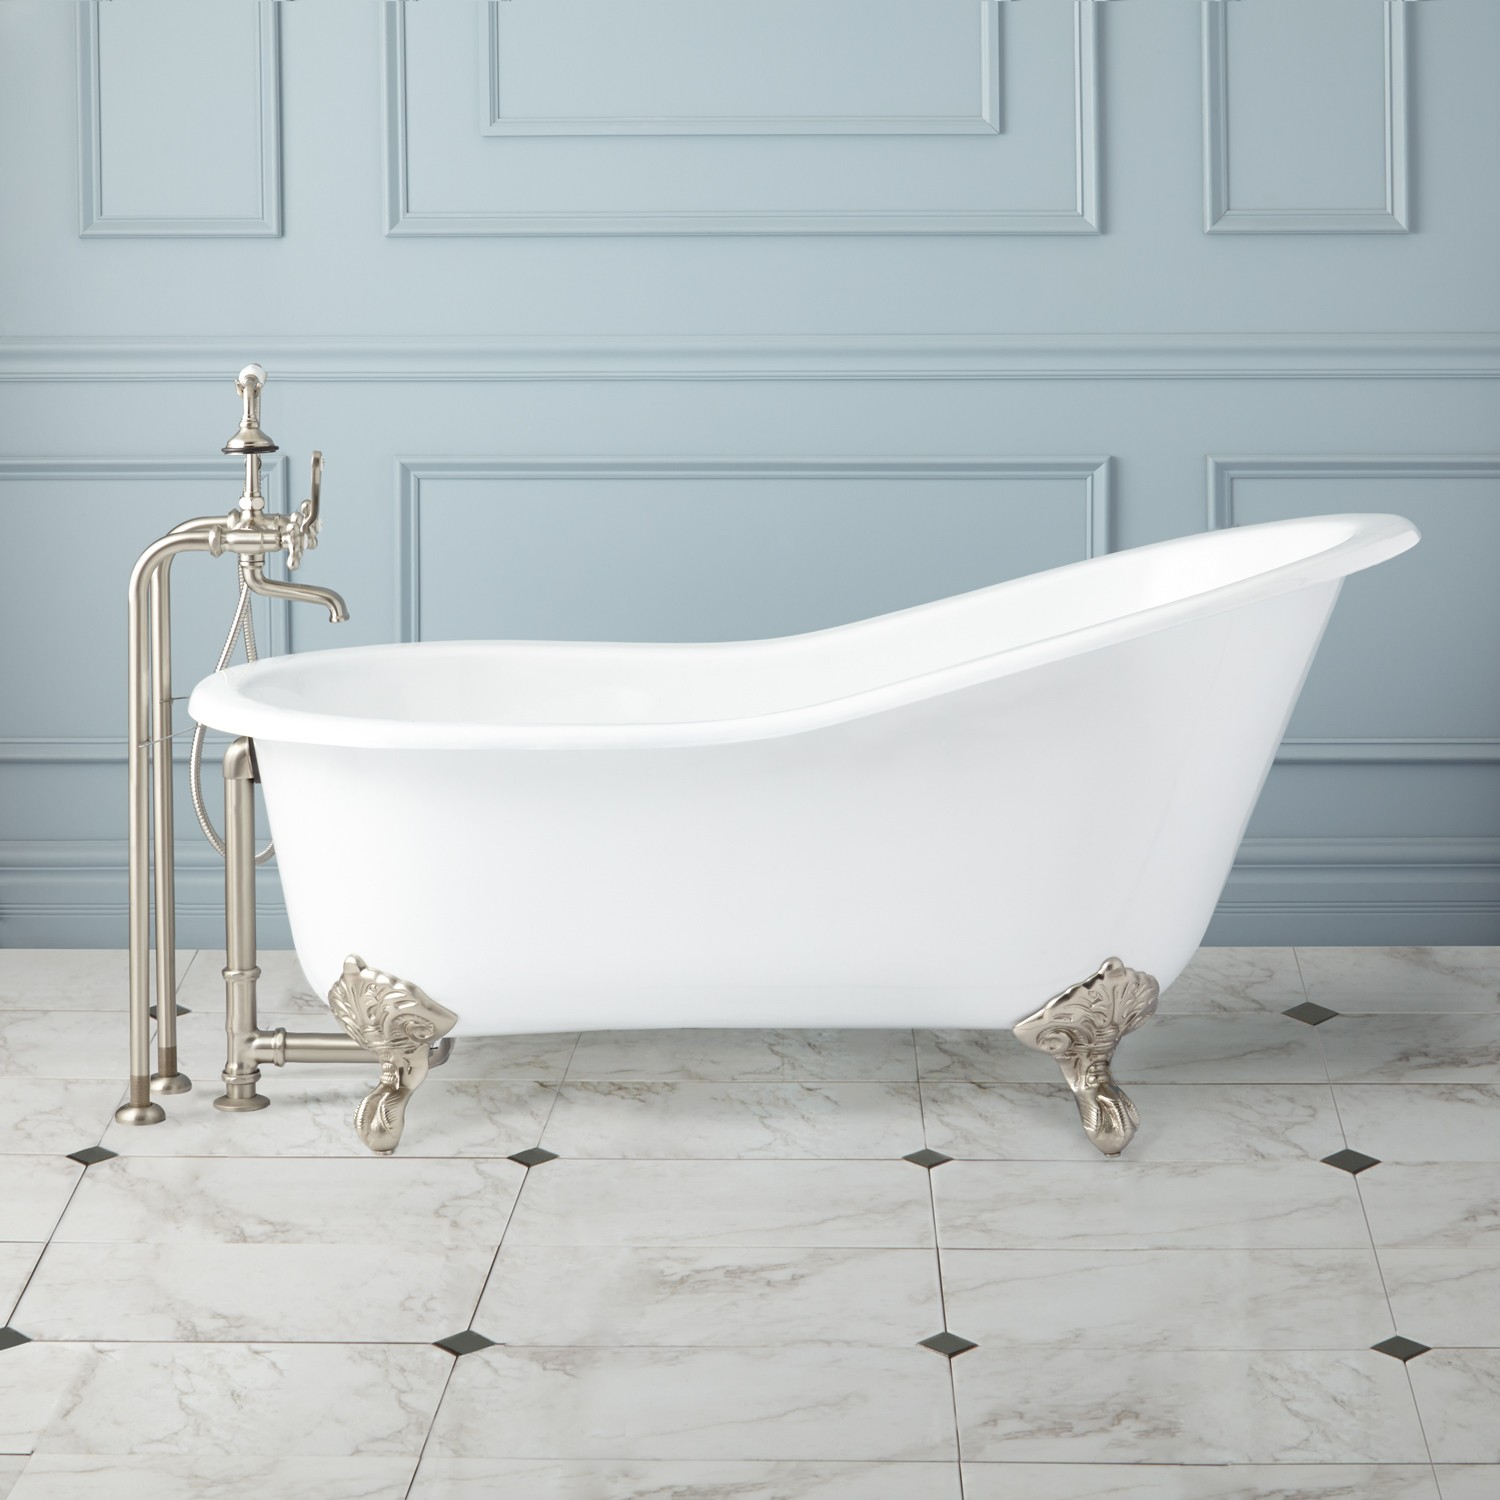 How a cast iron tub can improve your homes appearance